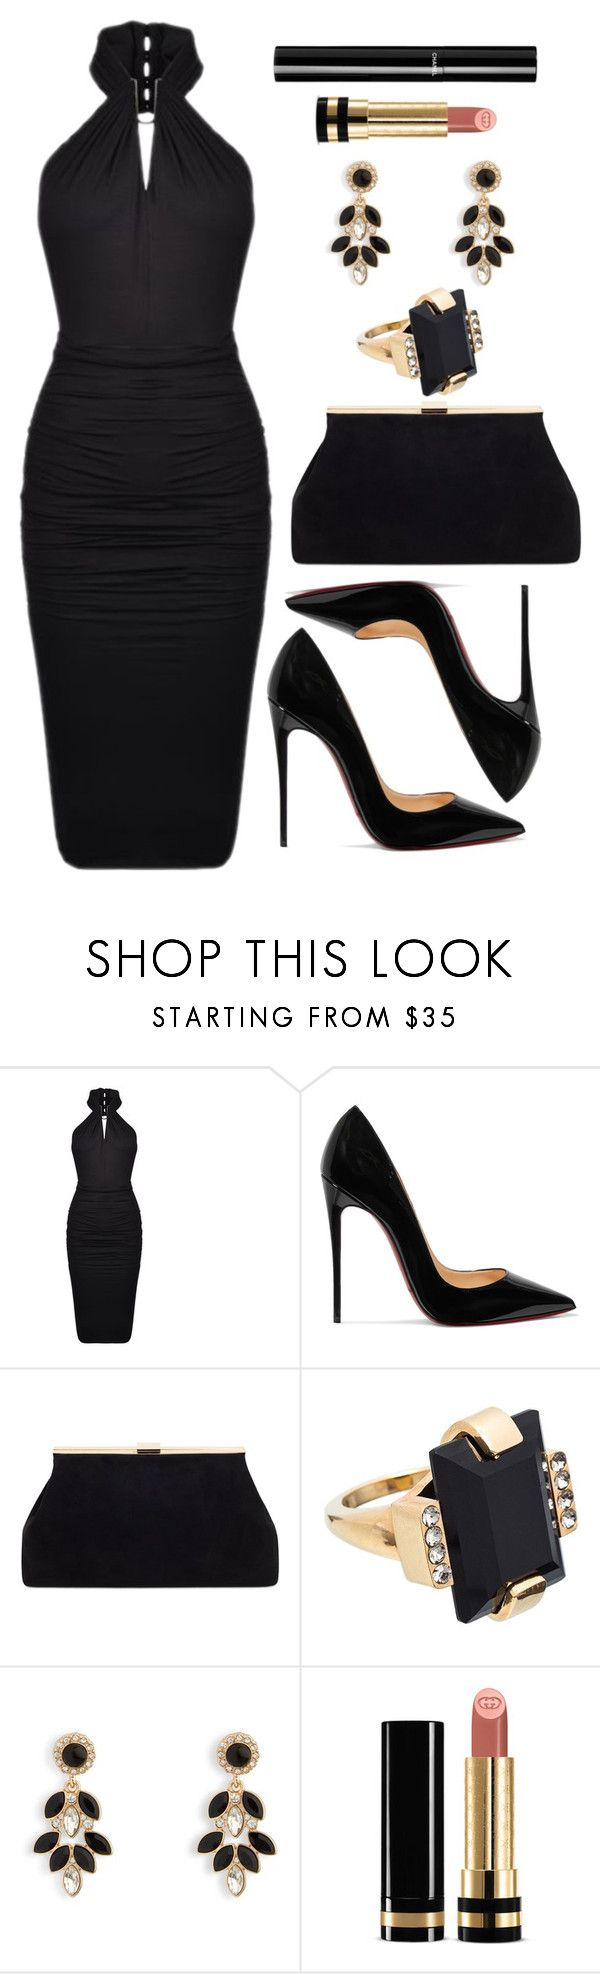 Untitled #4401 by natalyasidunova ❤ liked on Polyvore featuring Plein Sud, Christian Louboutin, Marni, Vera Bradley, Gucci and Chanel